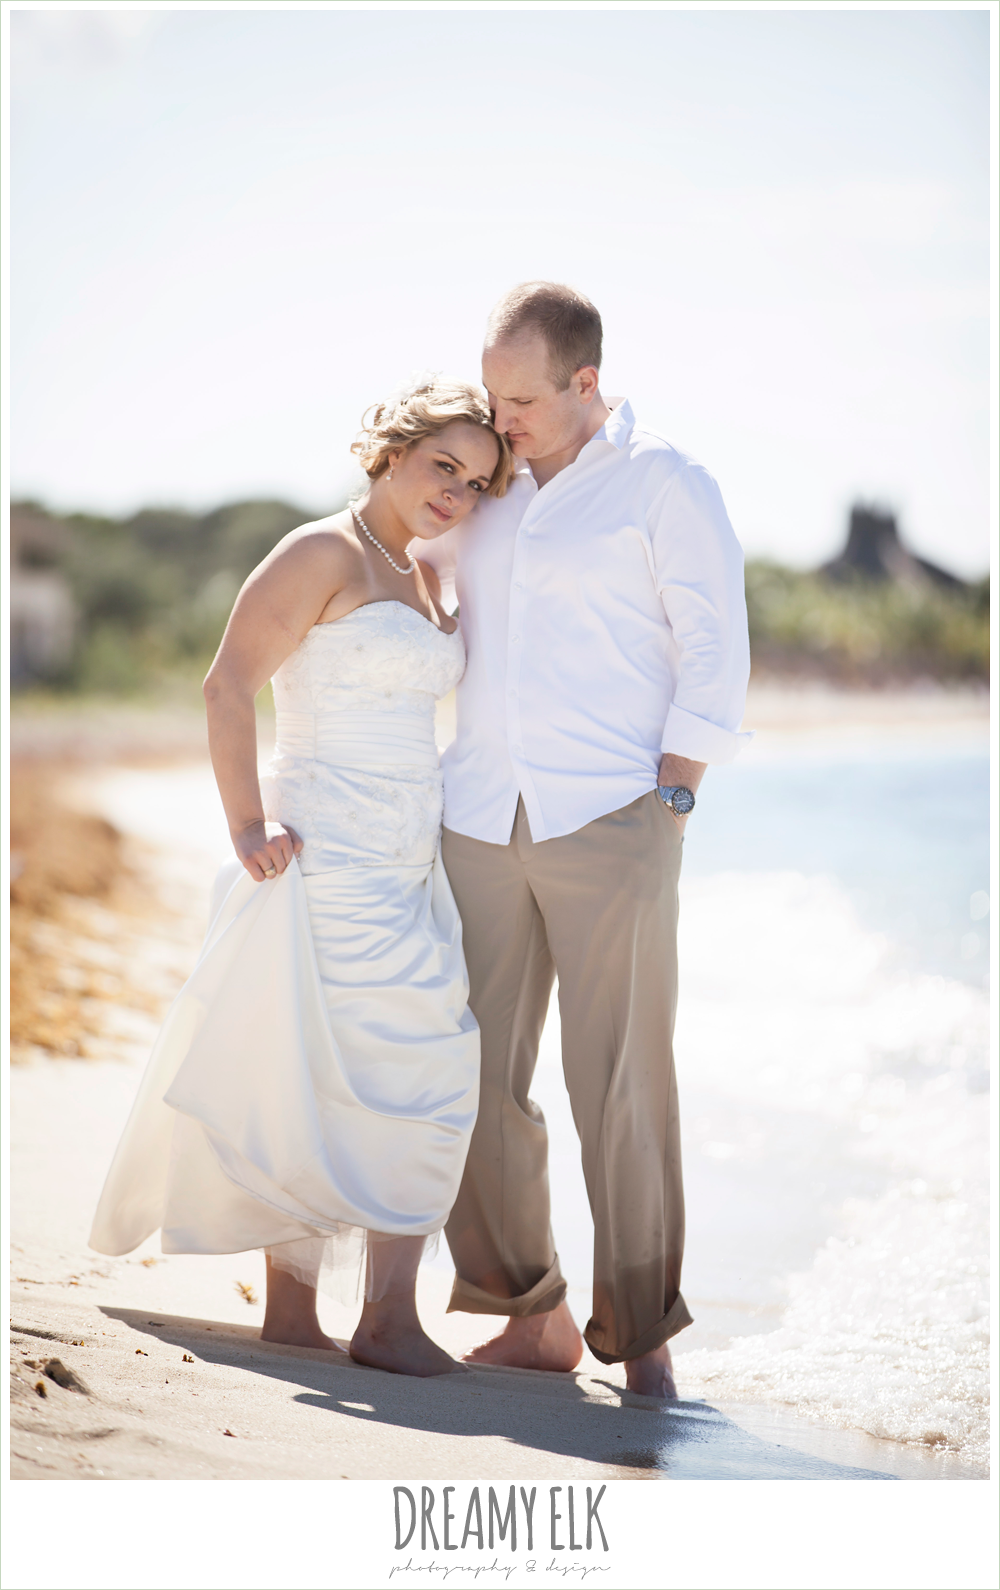 bride and groom walking on the beach, destination wedding, cozumel {dreamy elk photography and design} photo